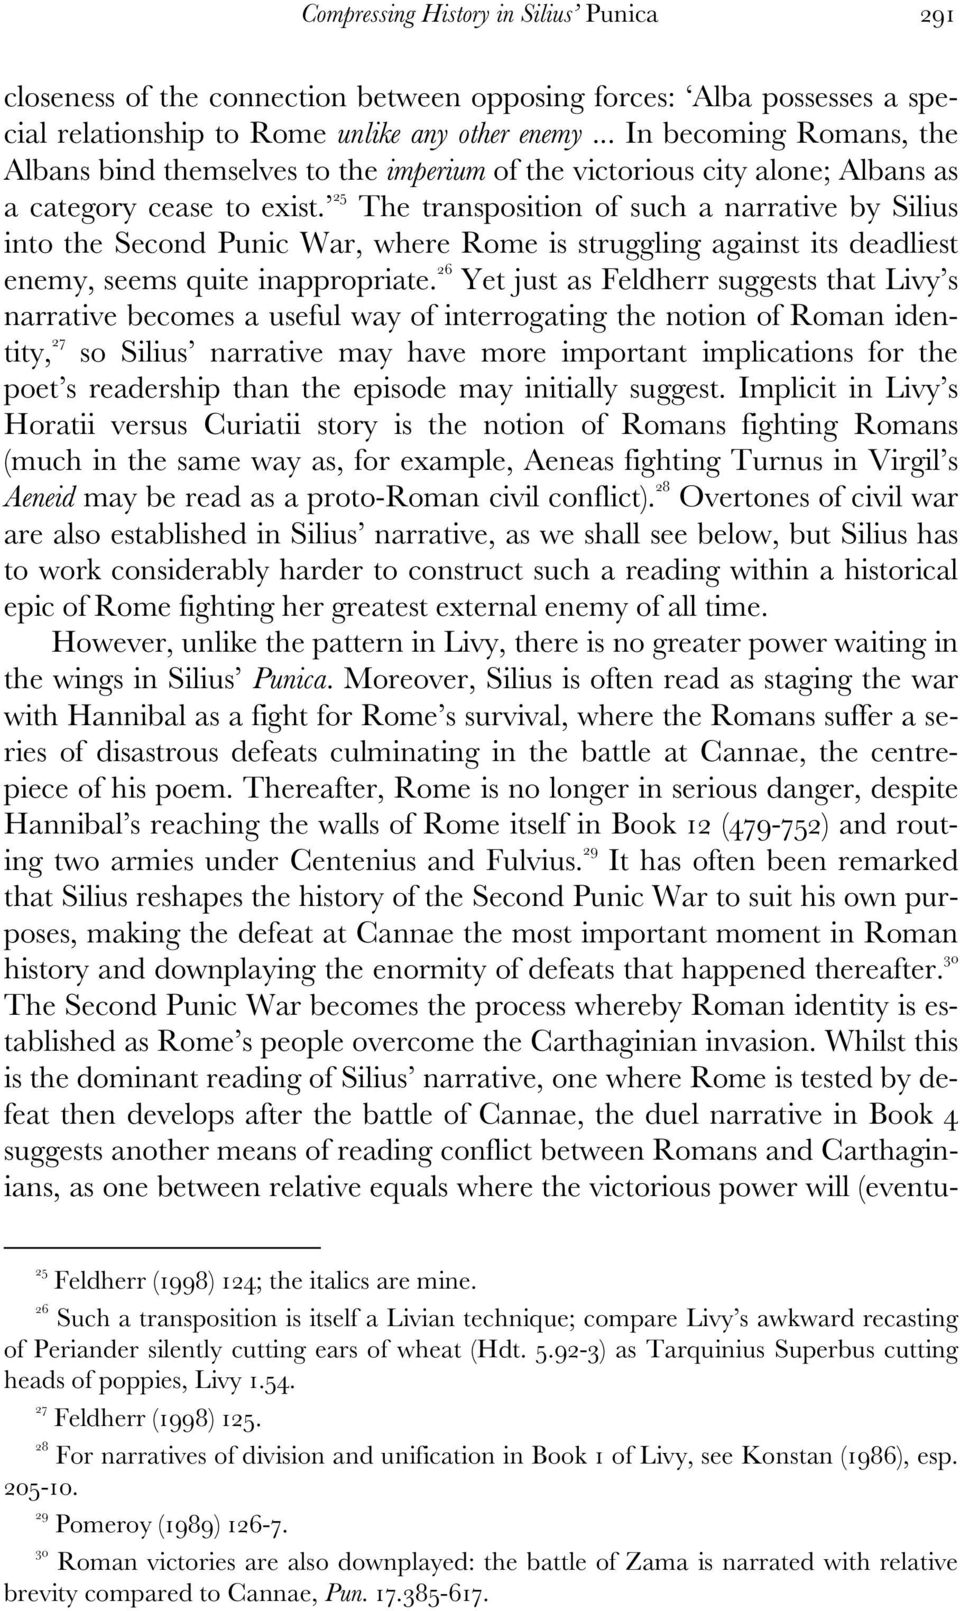 25 The transposition of such a narrative by Silius into the Second Punic War, where Rome is struggling against its deadliest enemy, seems quite inappropriate.